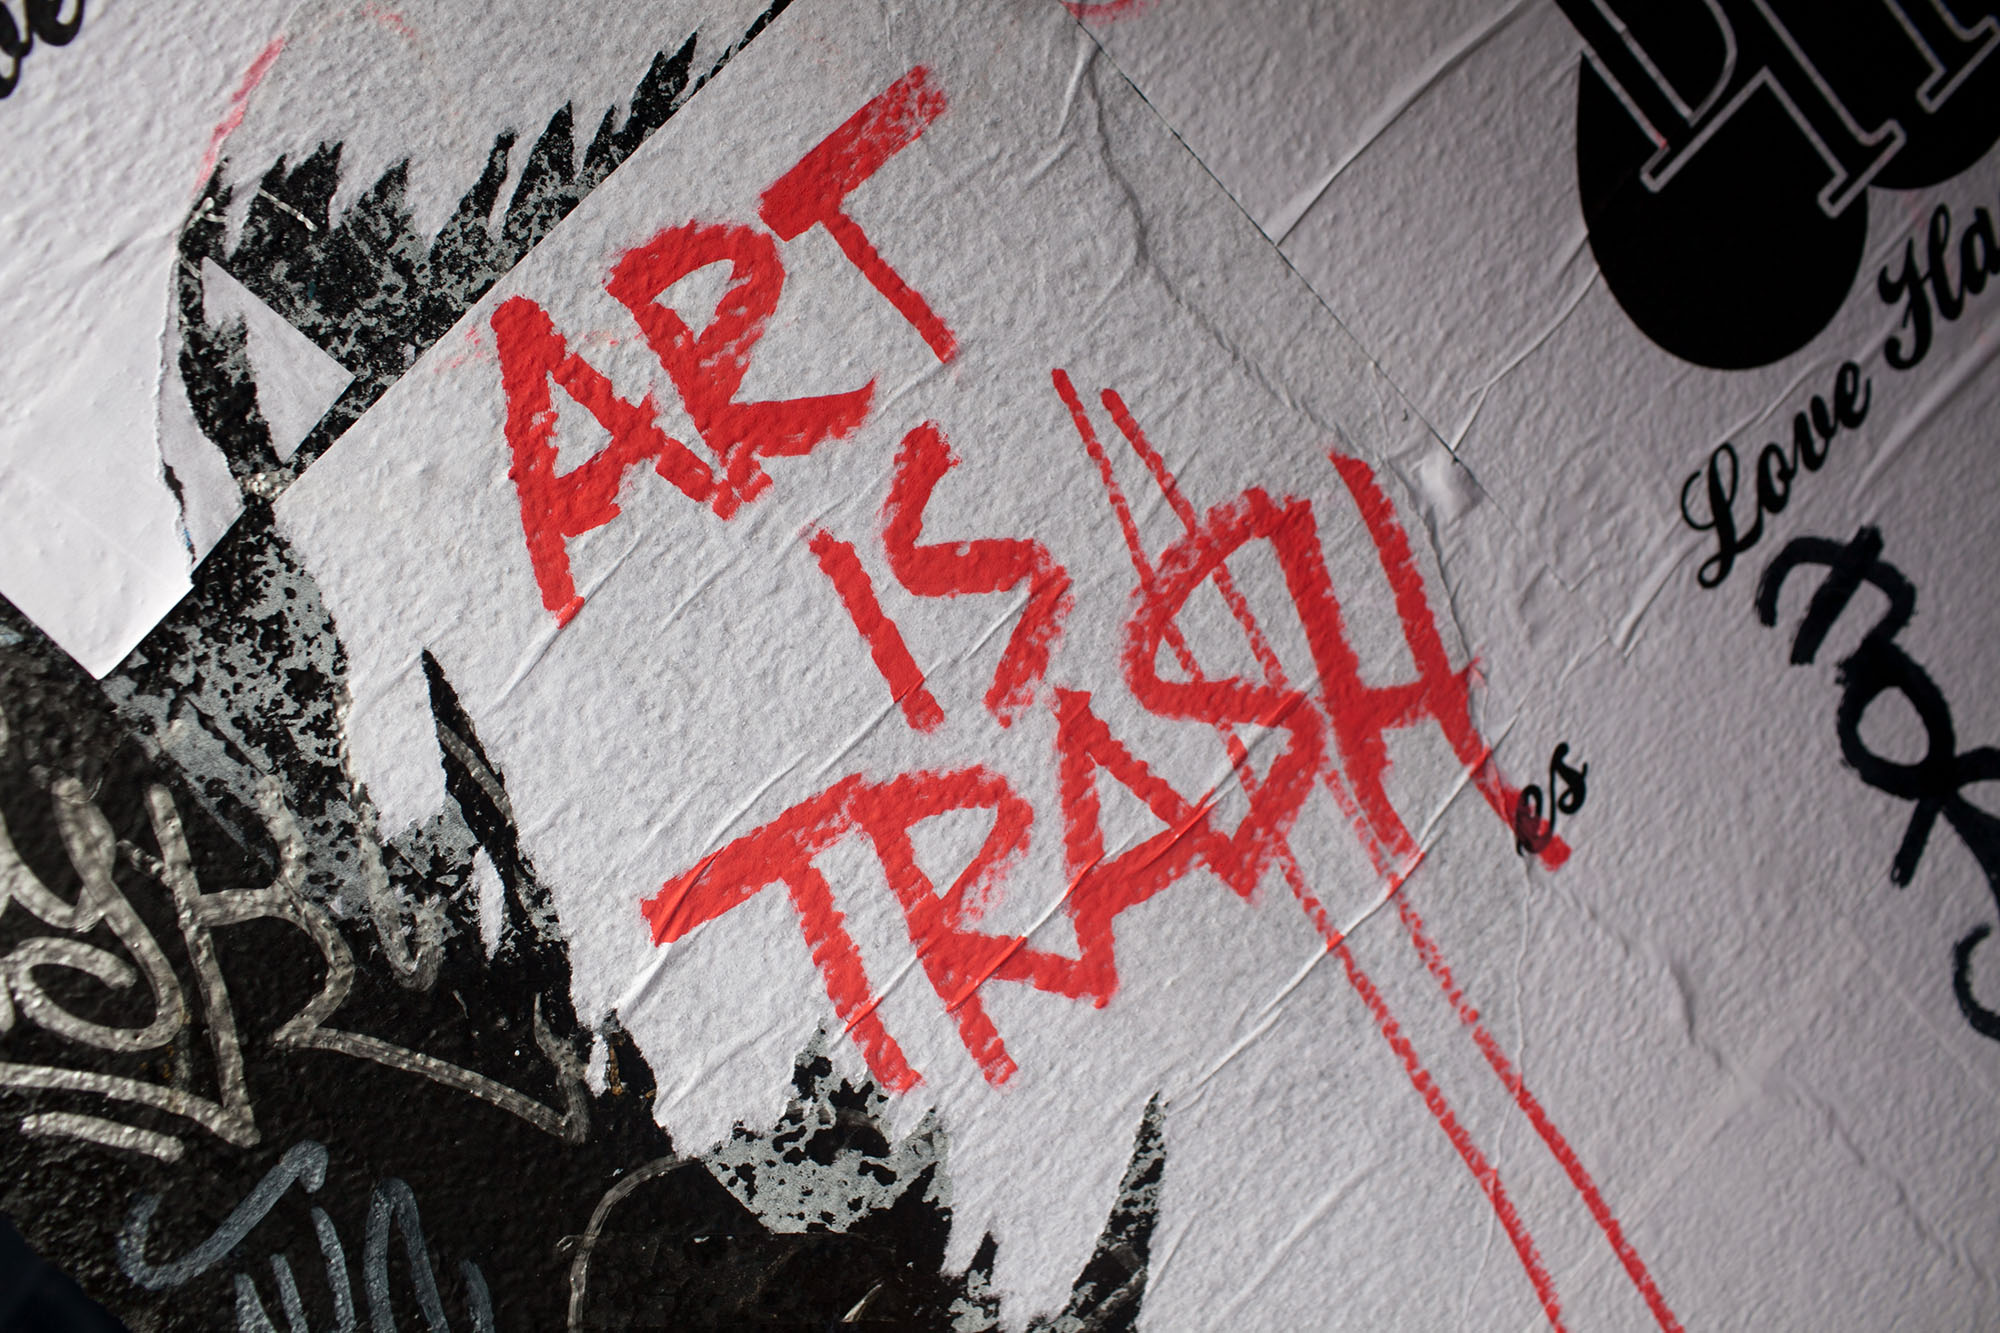 Art is trash | Brick Lane Street Art in London. | Street Art at Brick Lane in London, England.